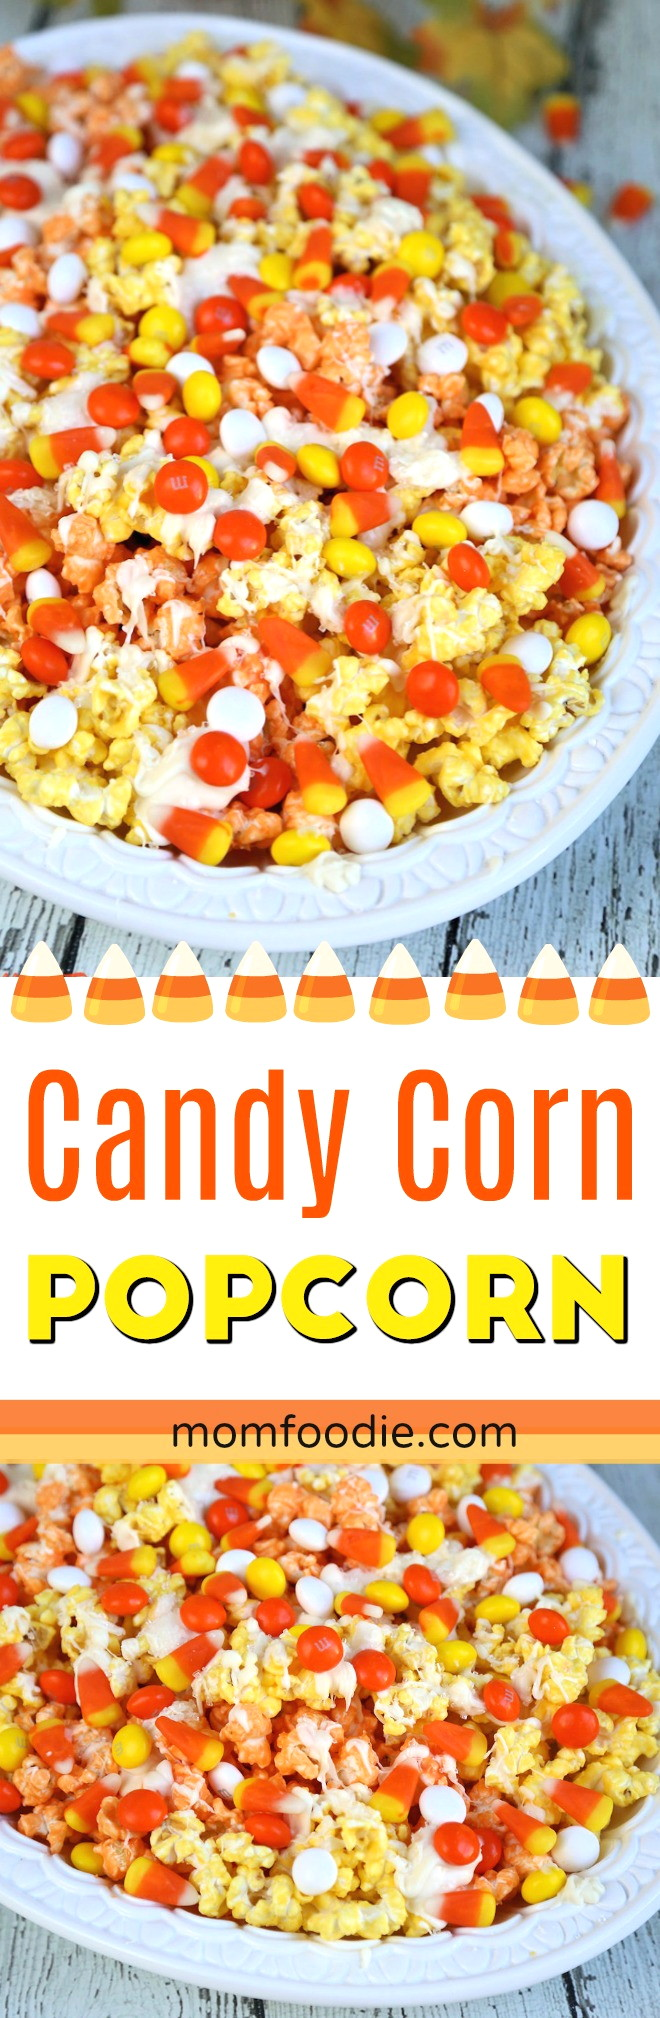 Candy Corn Popcorn recipe - Fall Snack Mix